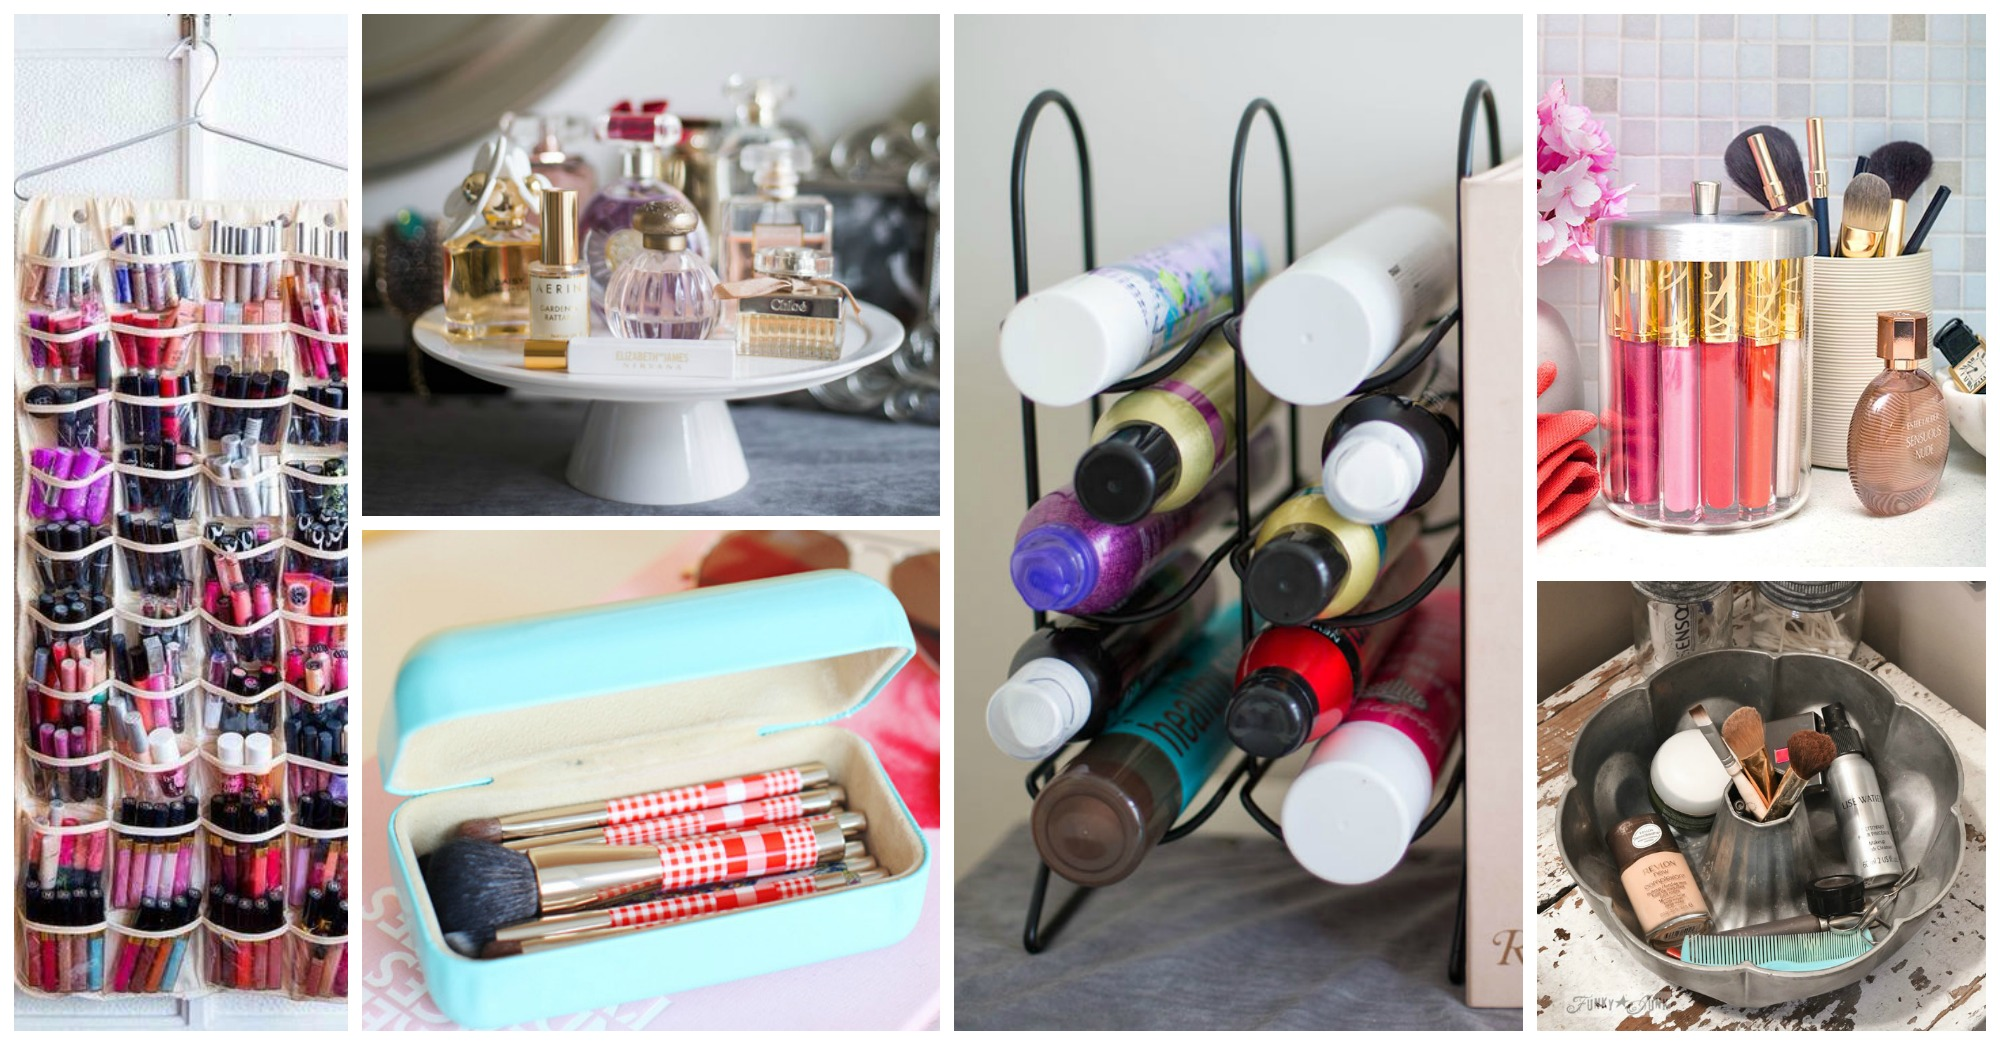 Lovable and Very Clever Ways to Organize Your Beauty Products